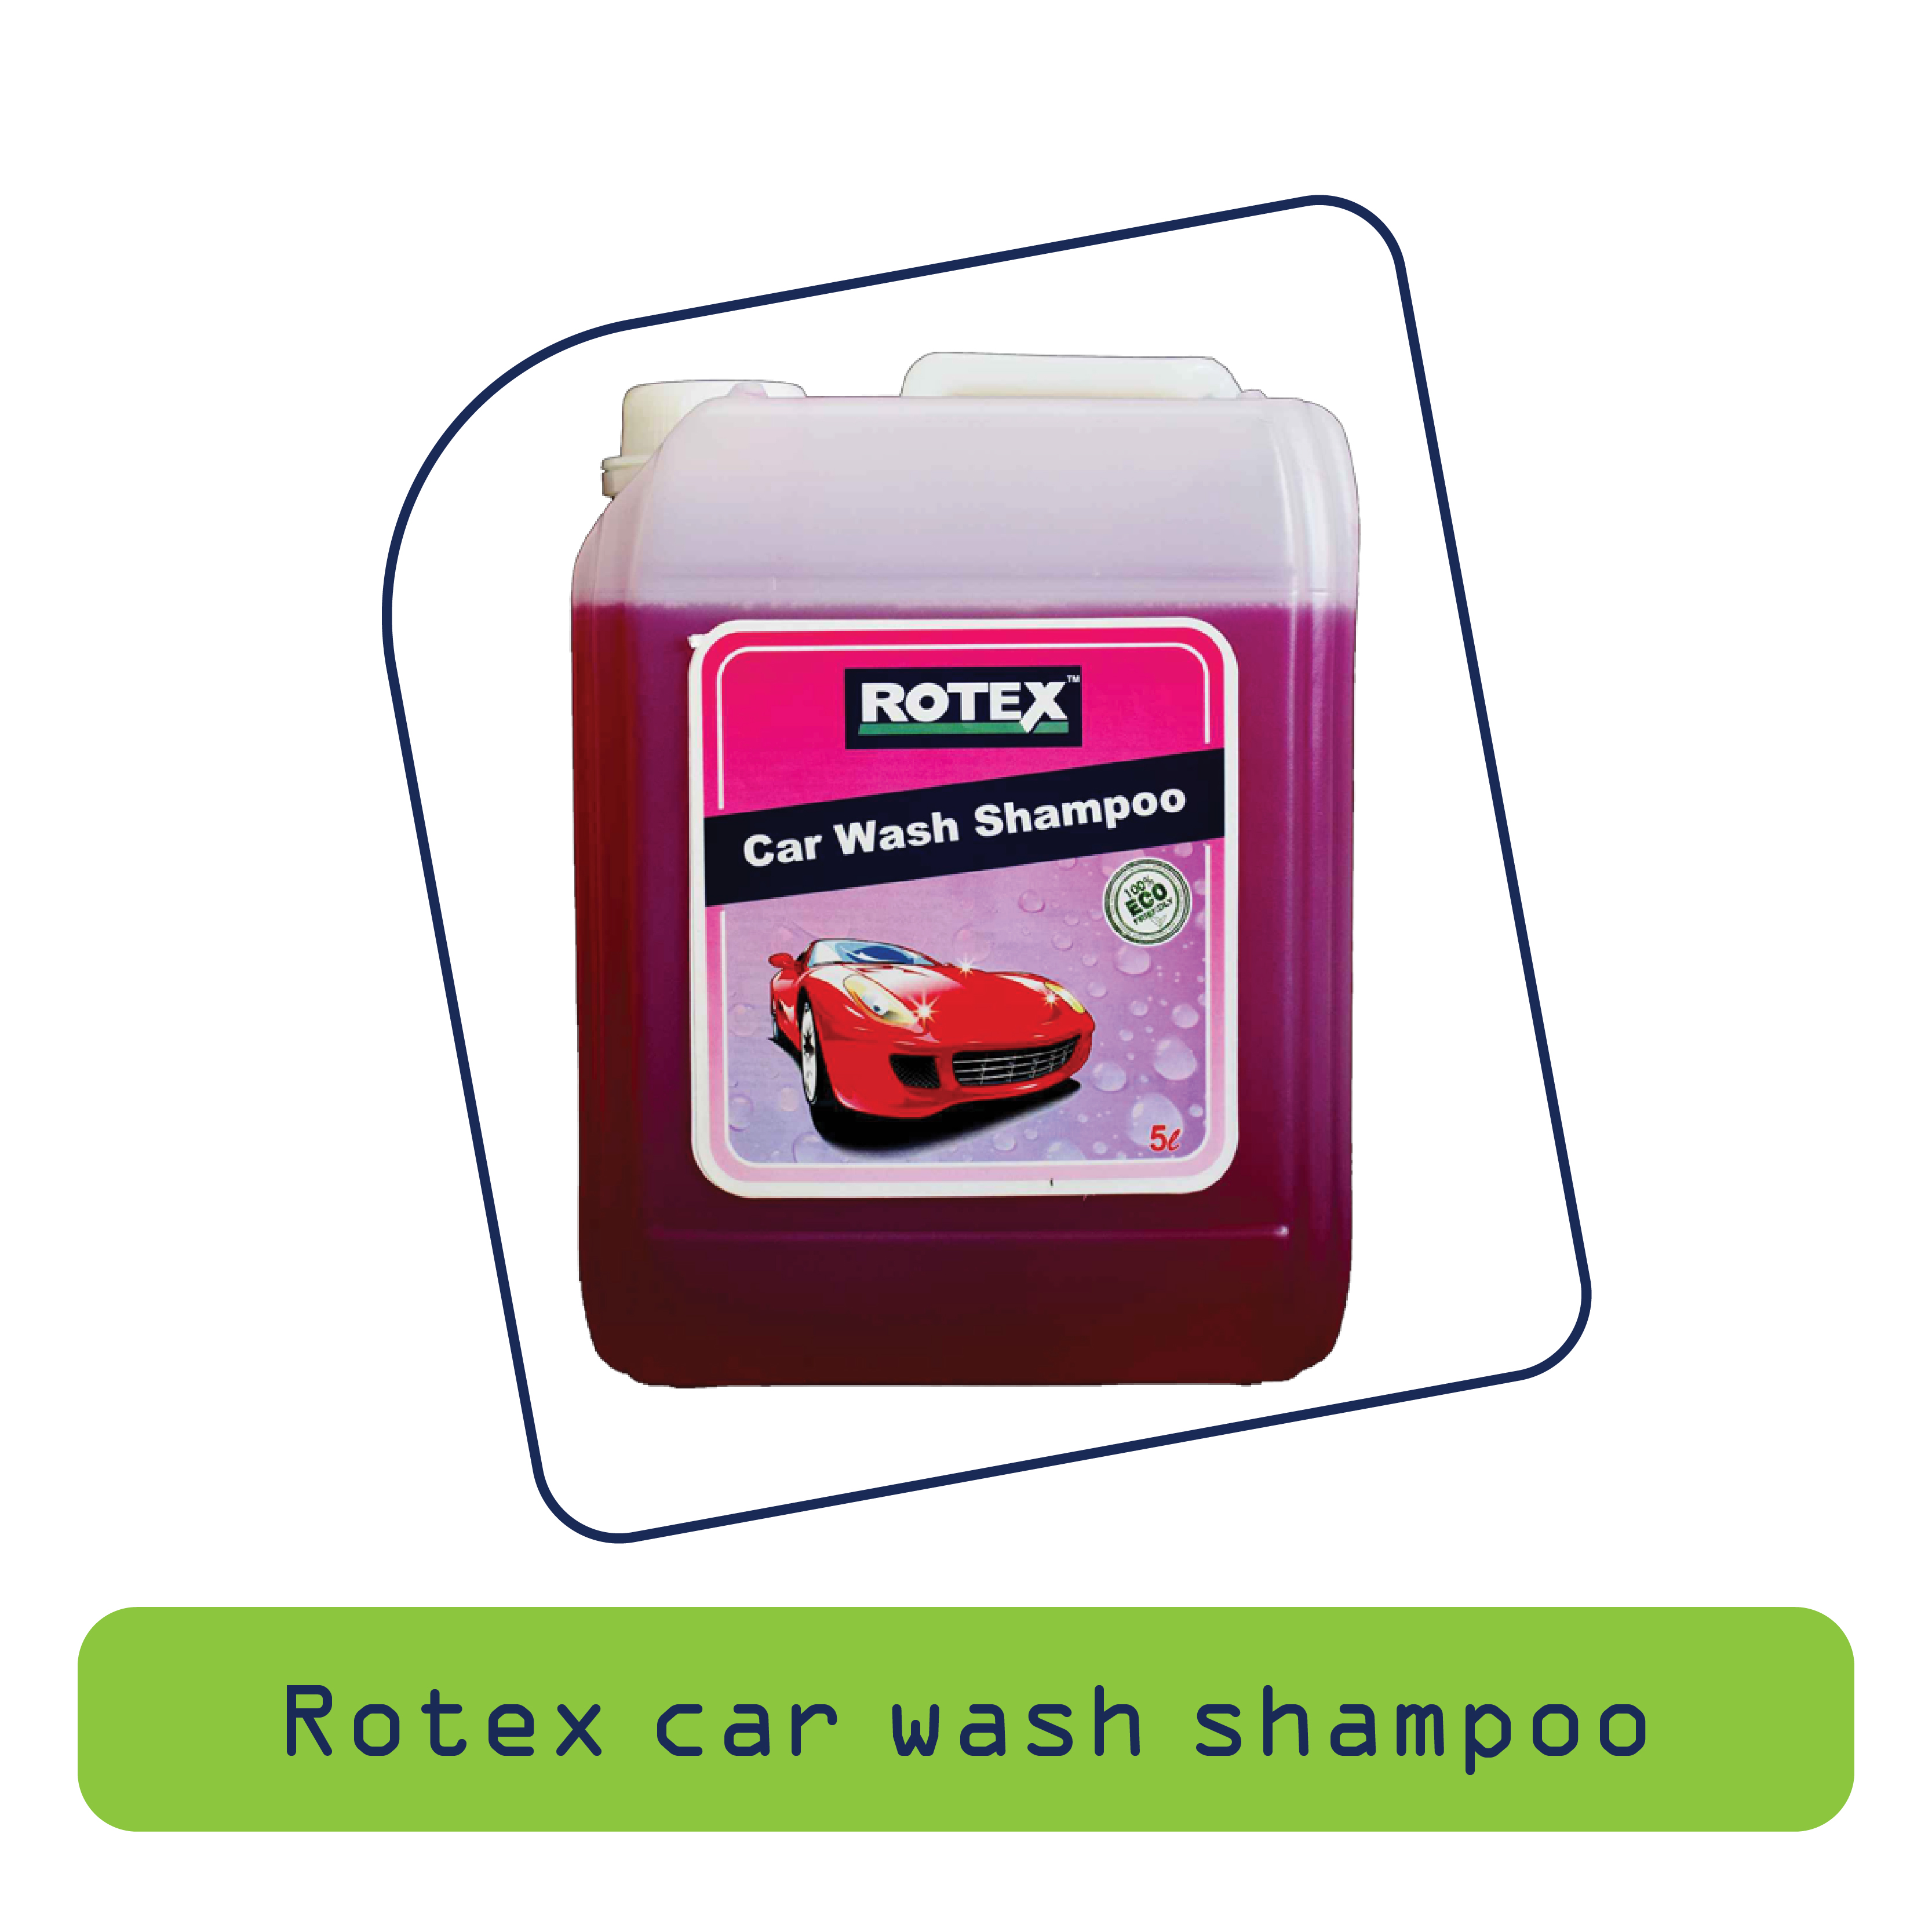 Rotex Car Wash Shampoo